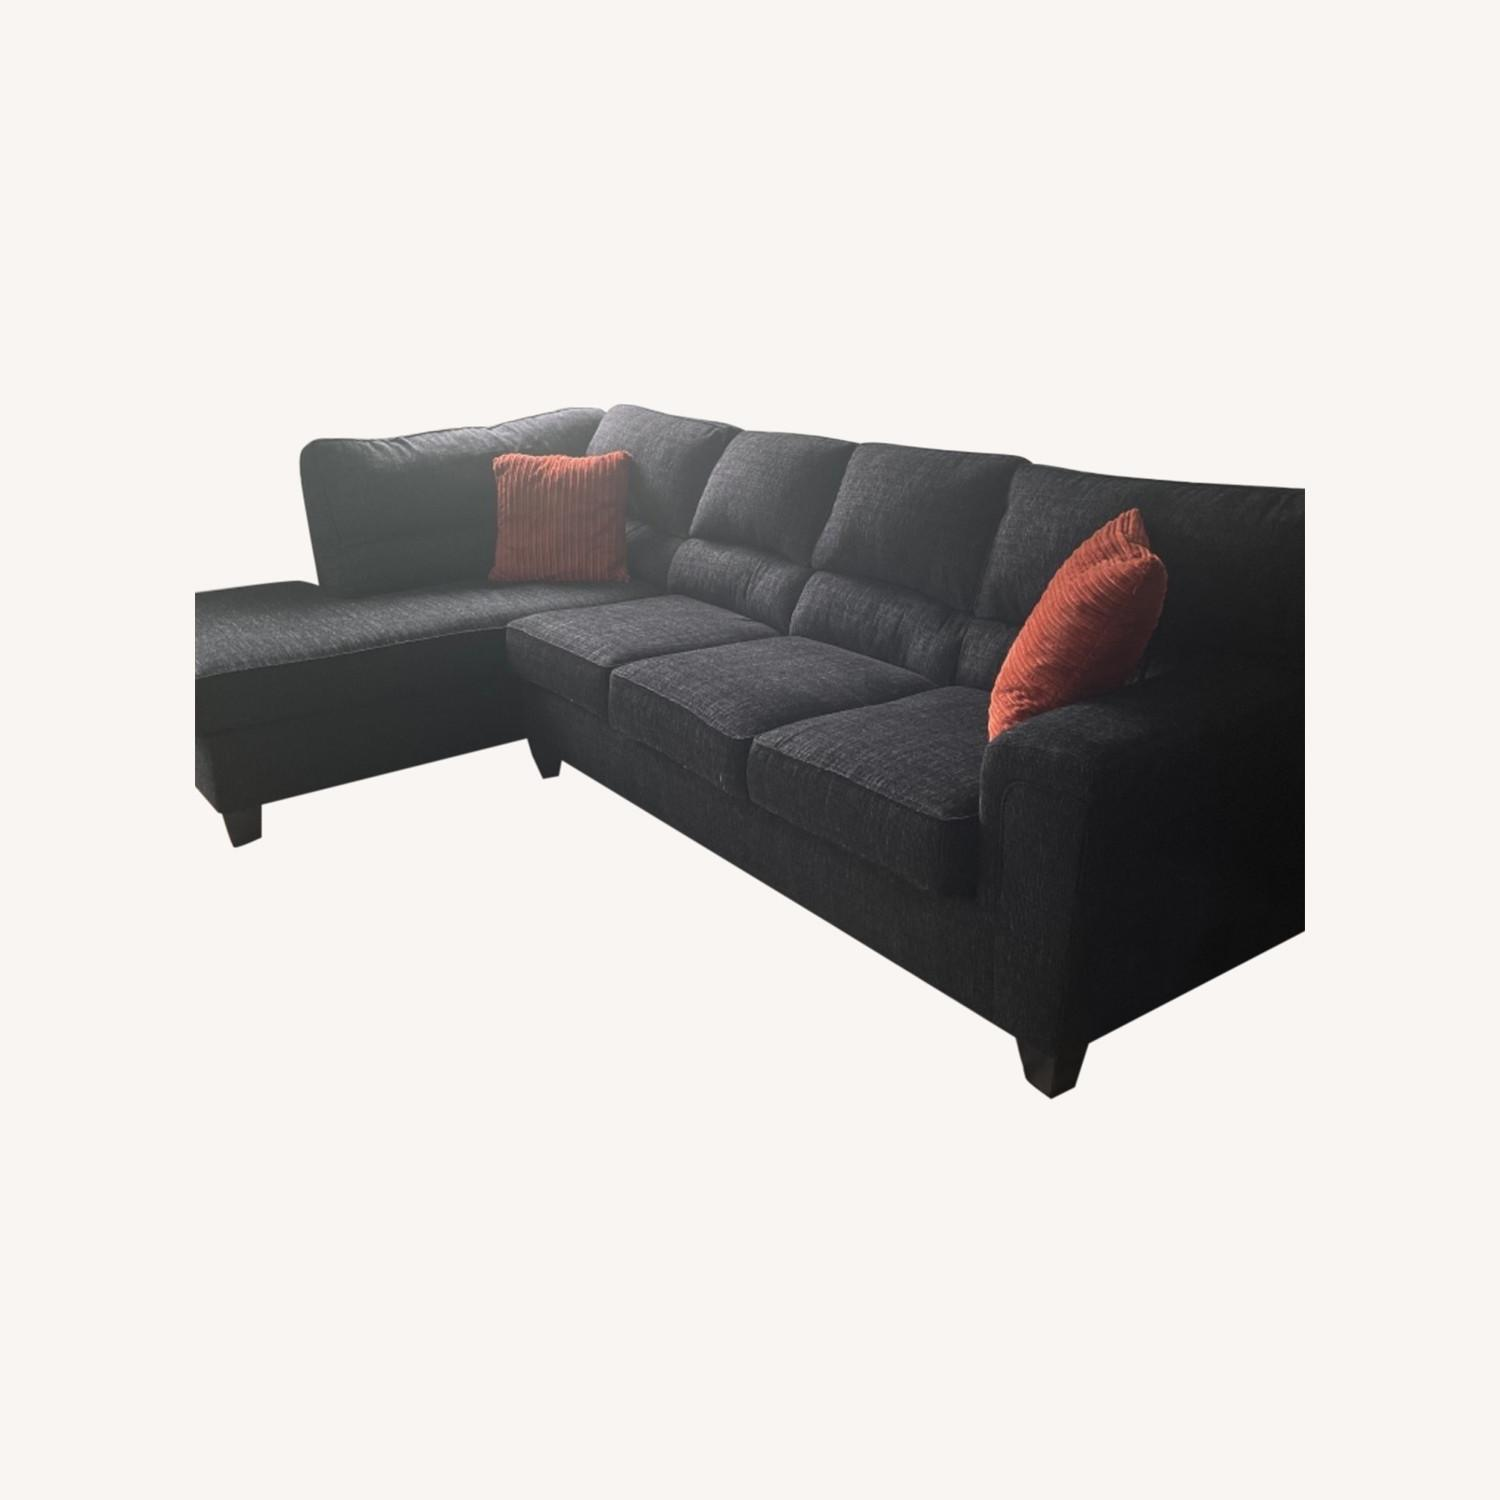 Charcoal Gray Couch w/ Sleeper Side - image-0